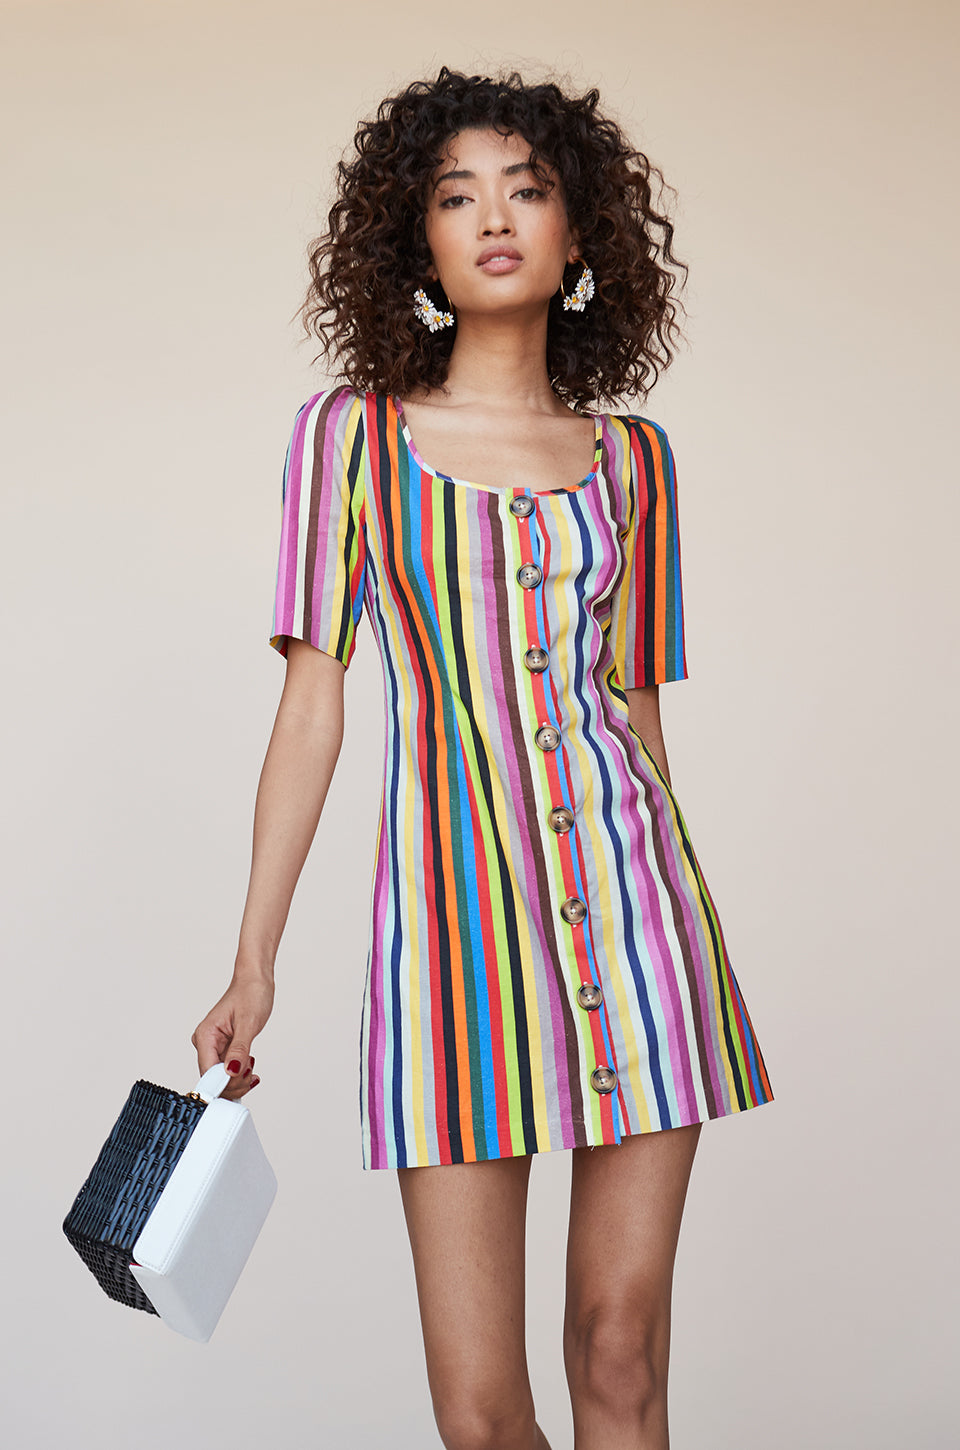 To acquire Dress Rainbow up pictures picture trends